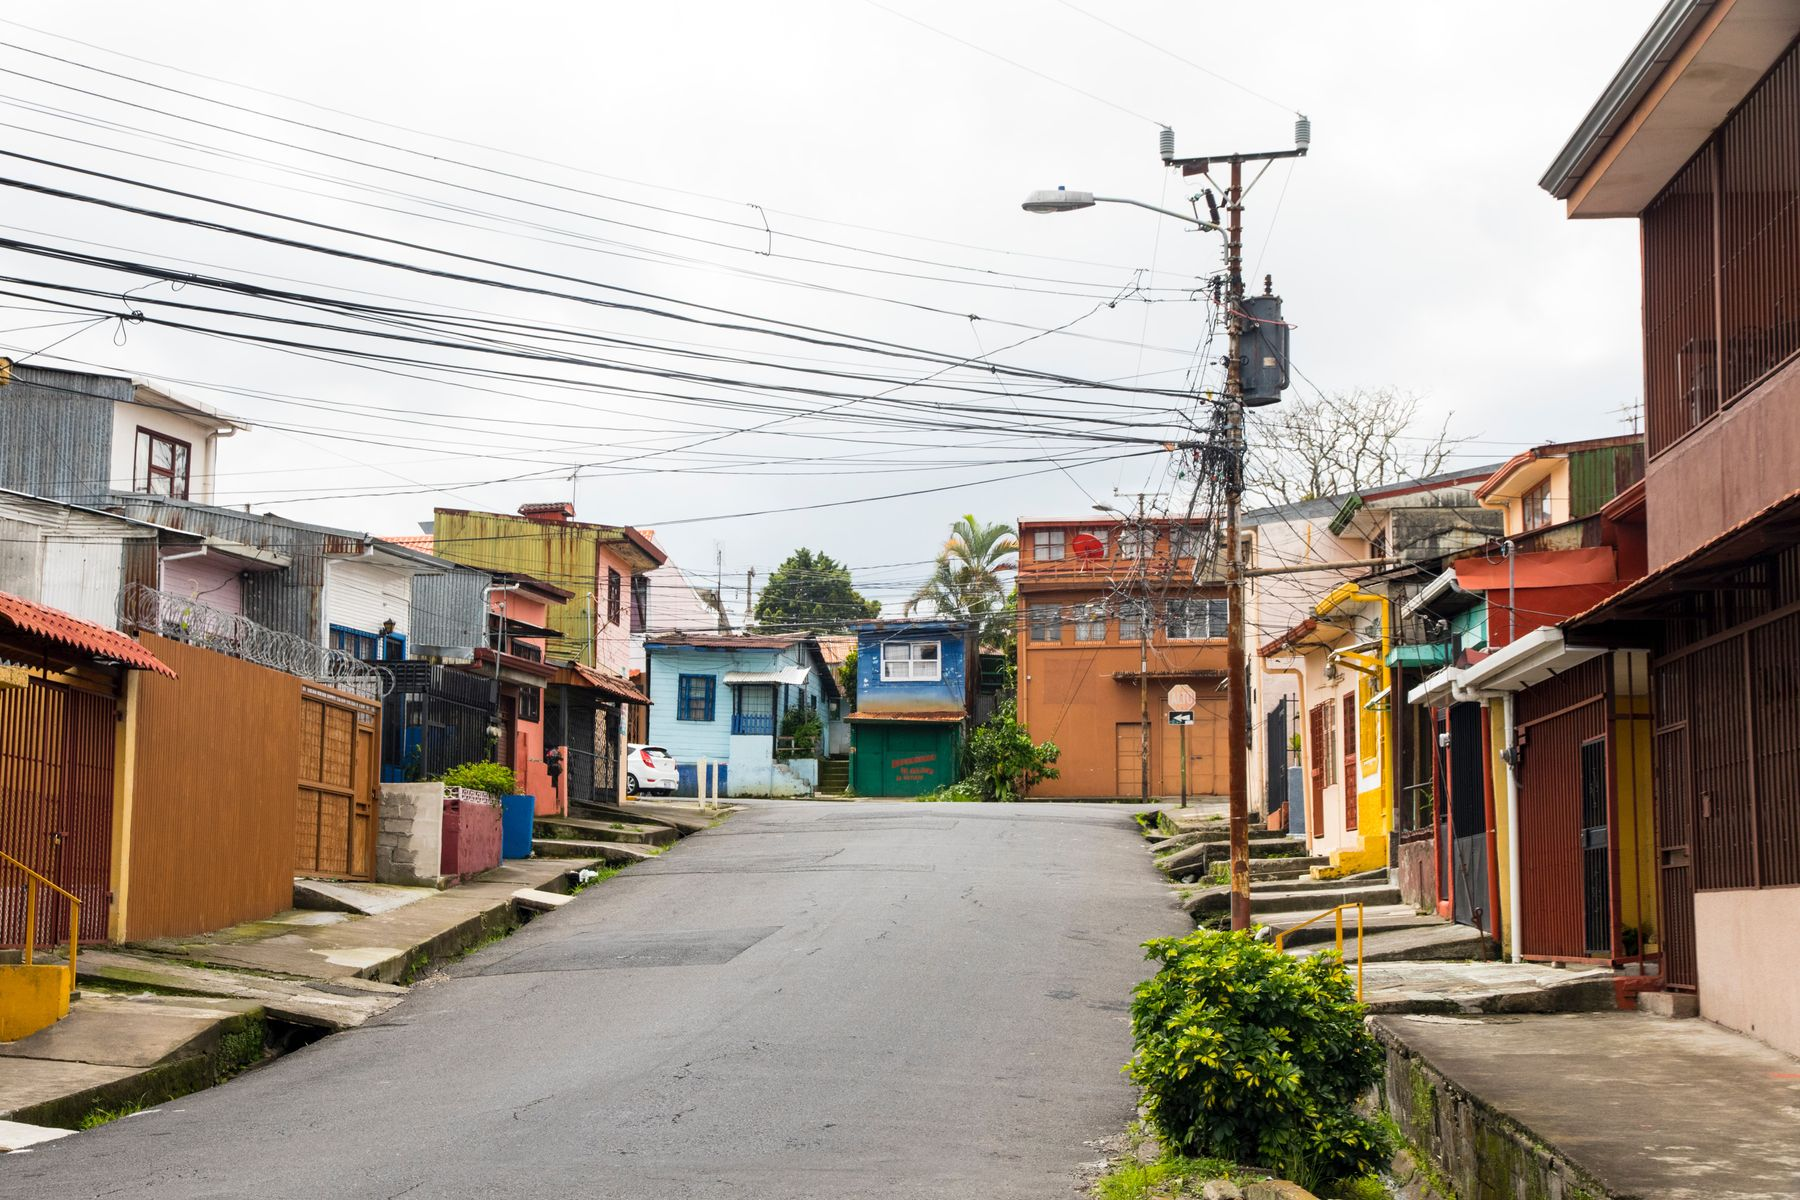 Quiet street with colourful buildings in San Jose. Costa Rica is open to travellers from Canada.